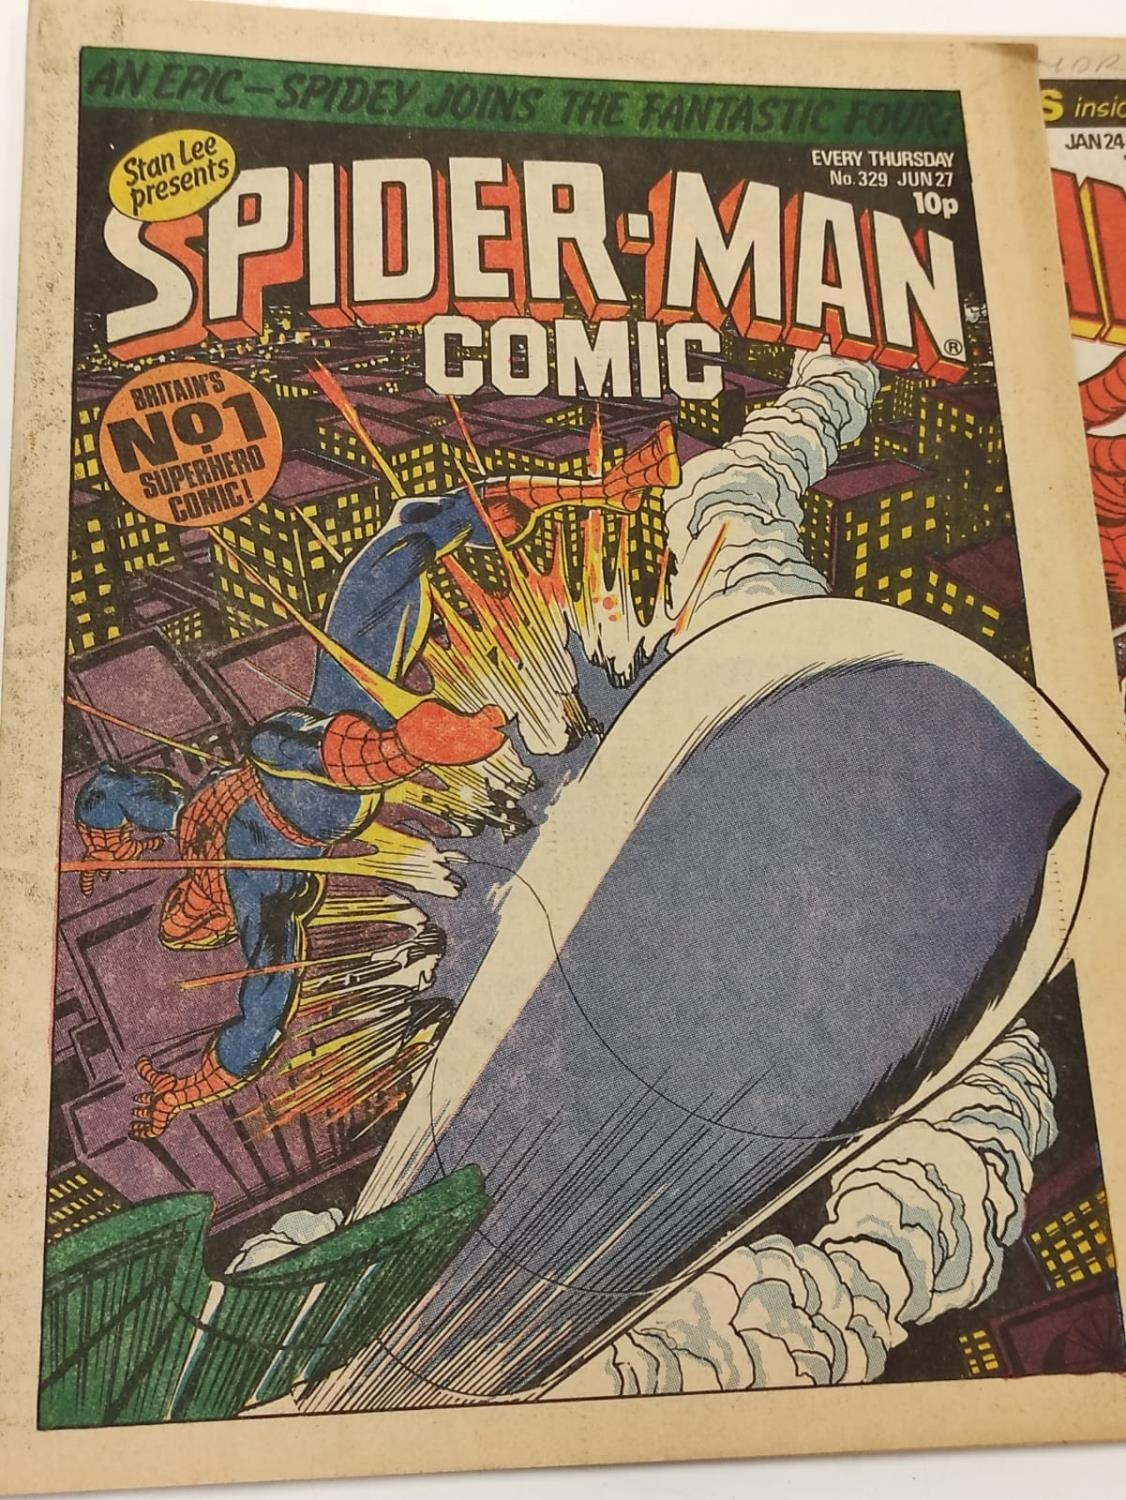 50 editions of Stan Lee Presents, a selection of 1979/1980's comics. - Image 44 of 71